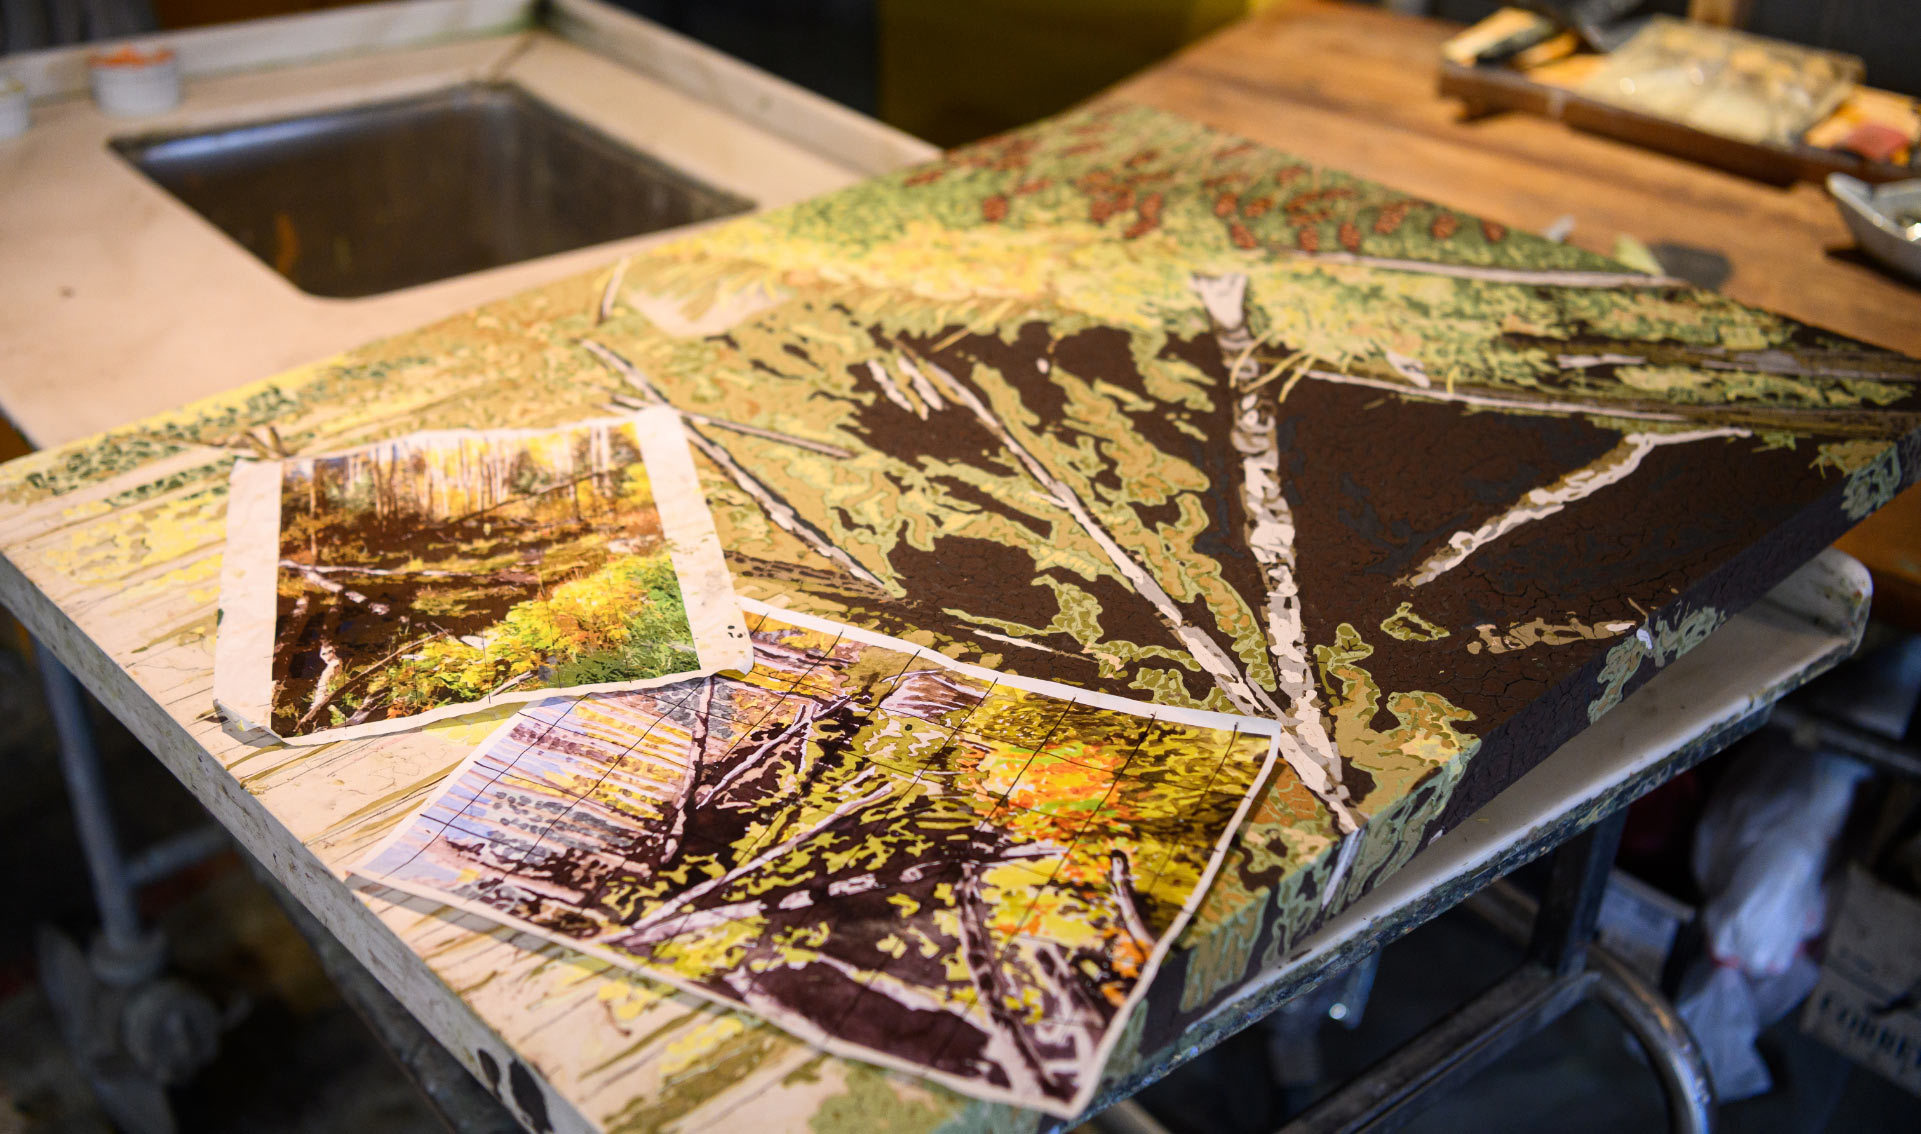 An in-progress painting on a work table, depicting abstracted trees and branches. There are two reference photos printed out and sitting on top of the painting, one covered with a grid.